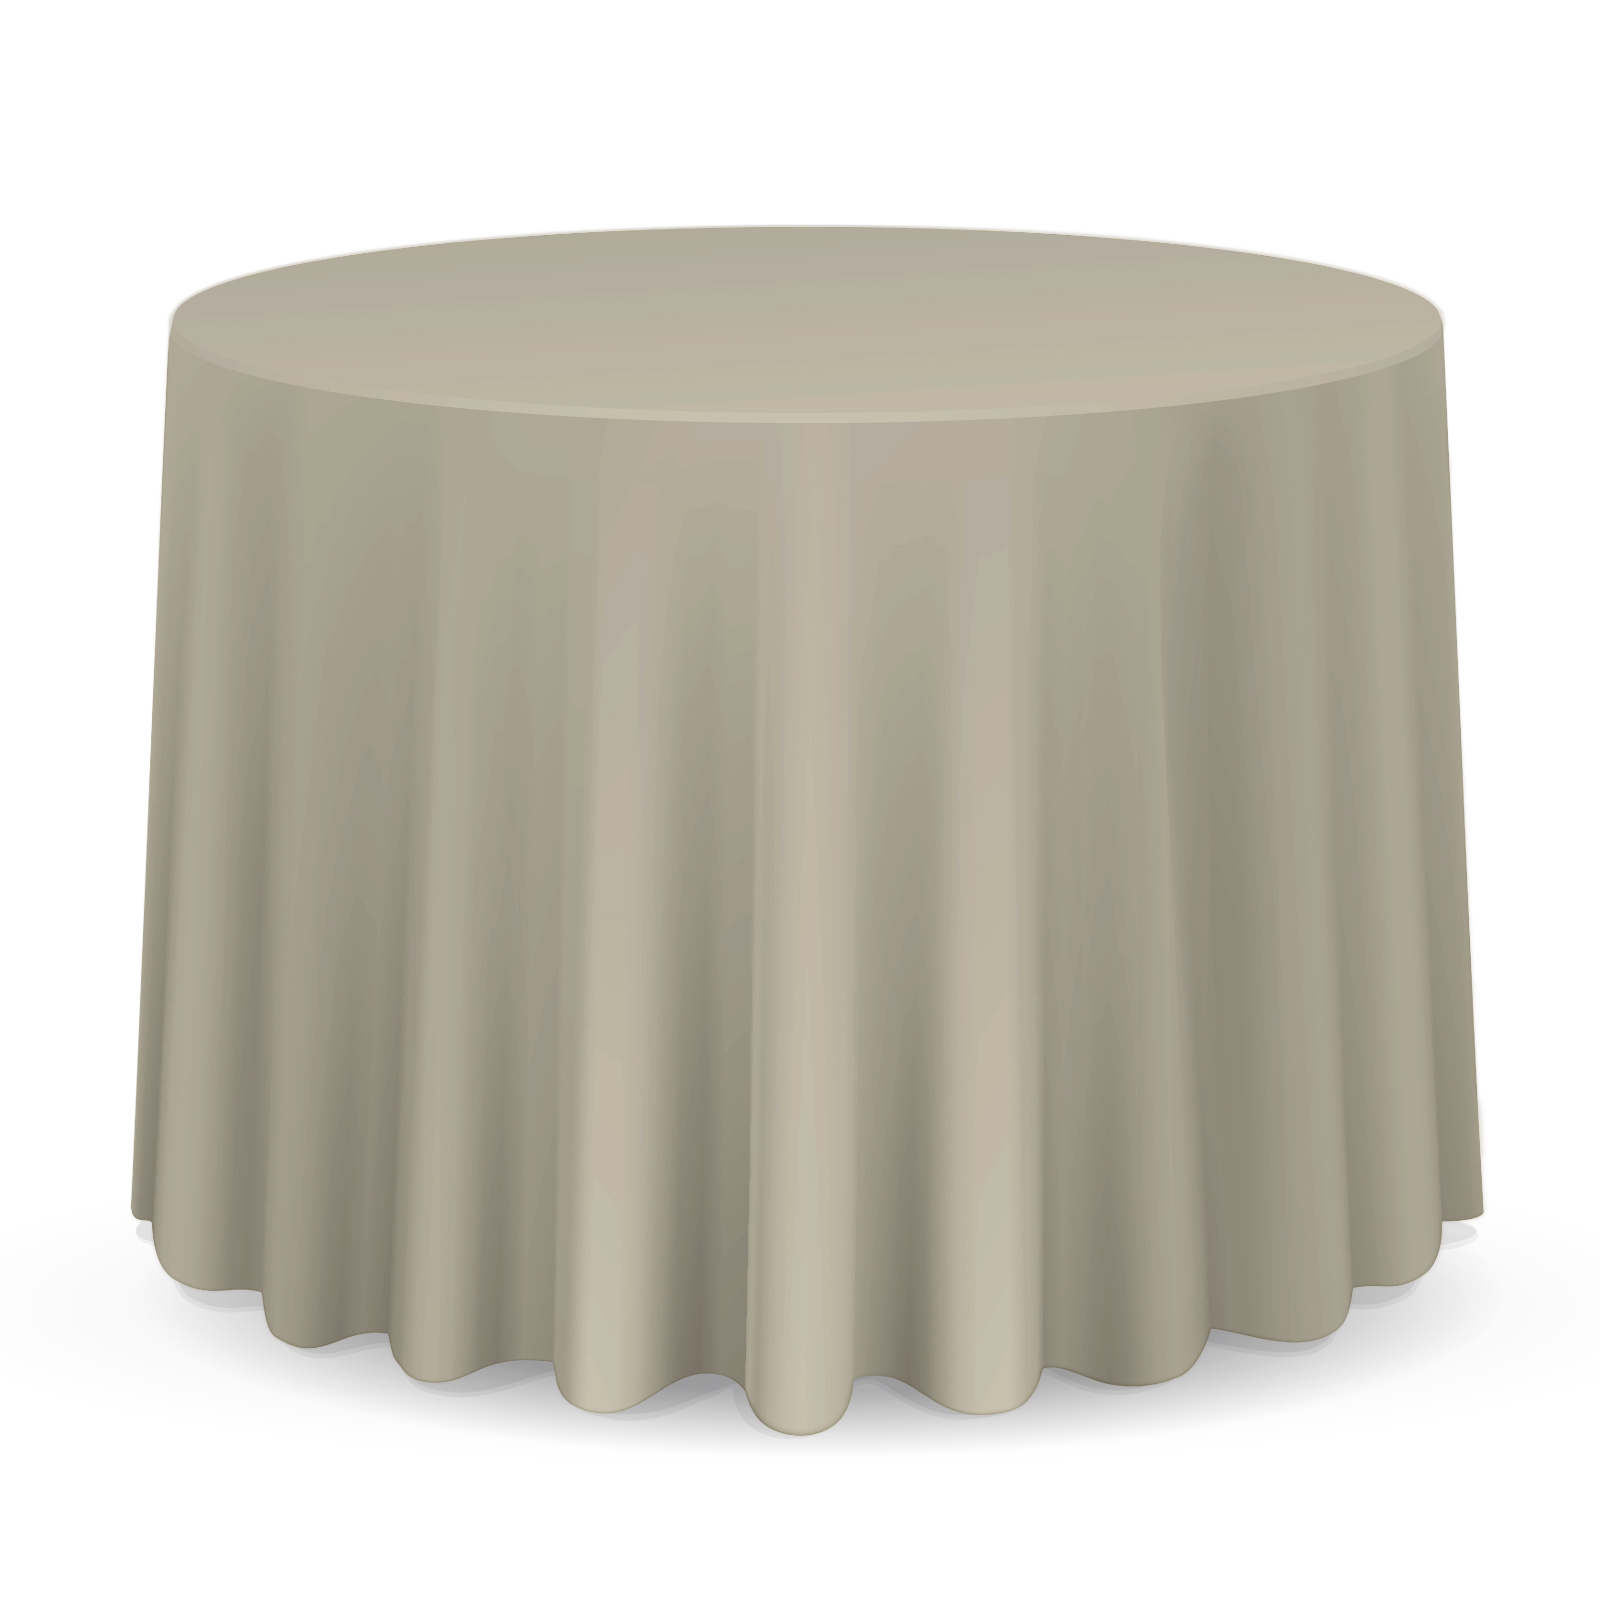 "Lanns Linens 108"" Round Clay Polyester Tablecloth Cover for Weddings, Banquets, or... by Lann's Linens"